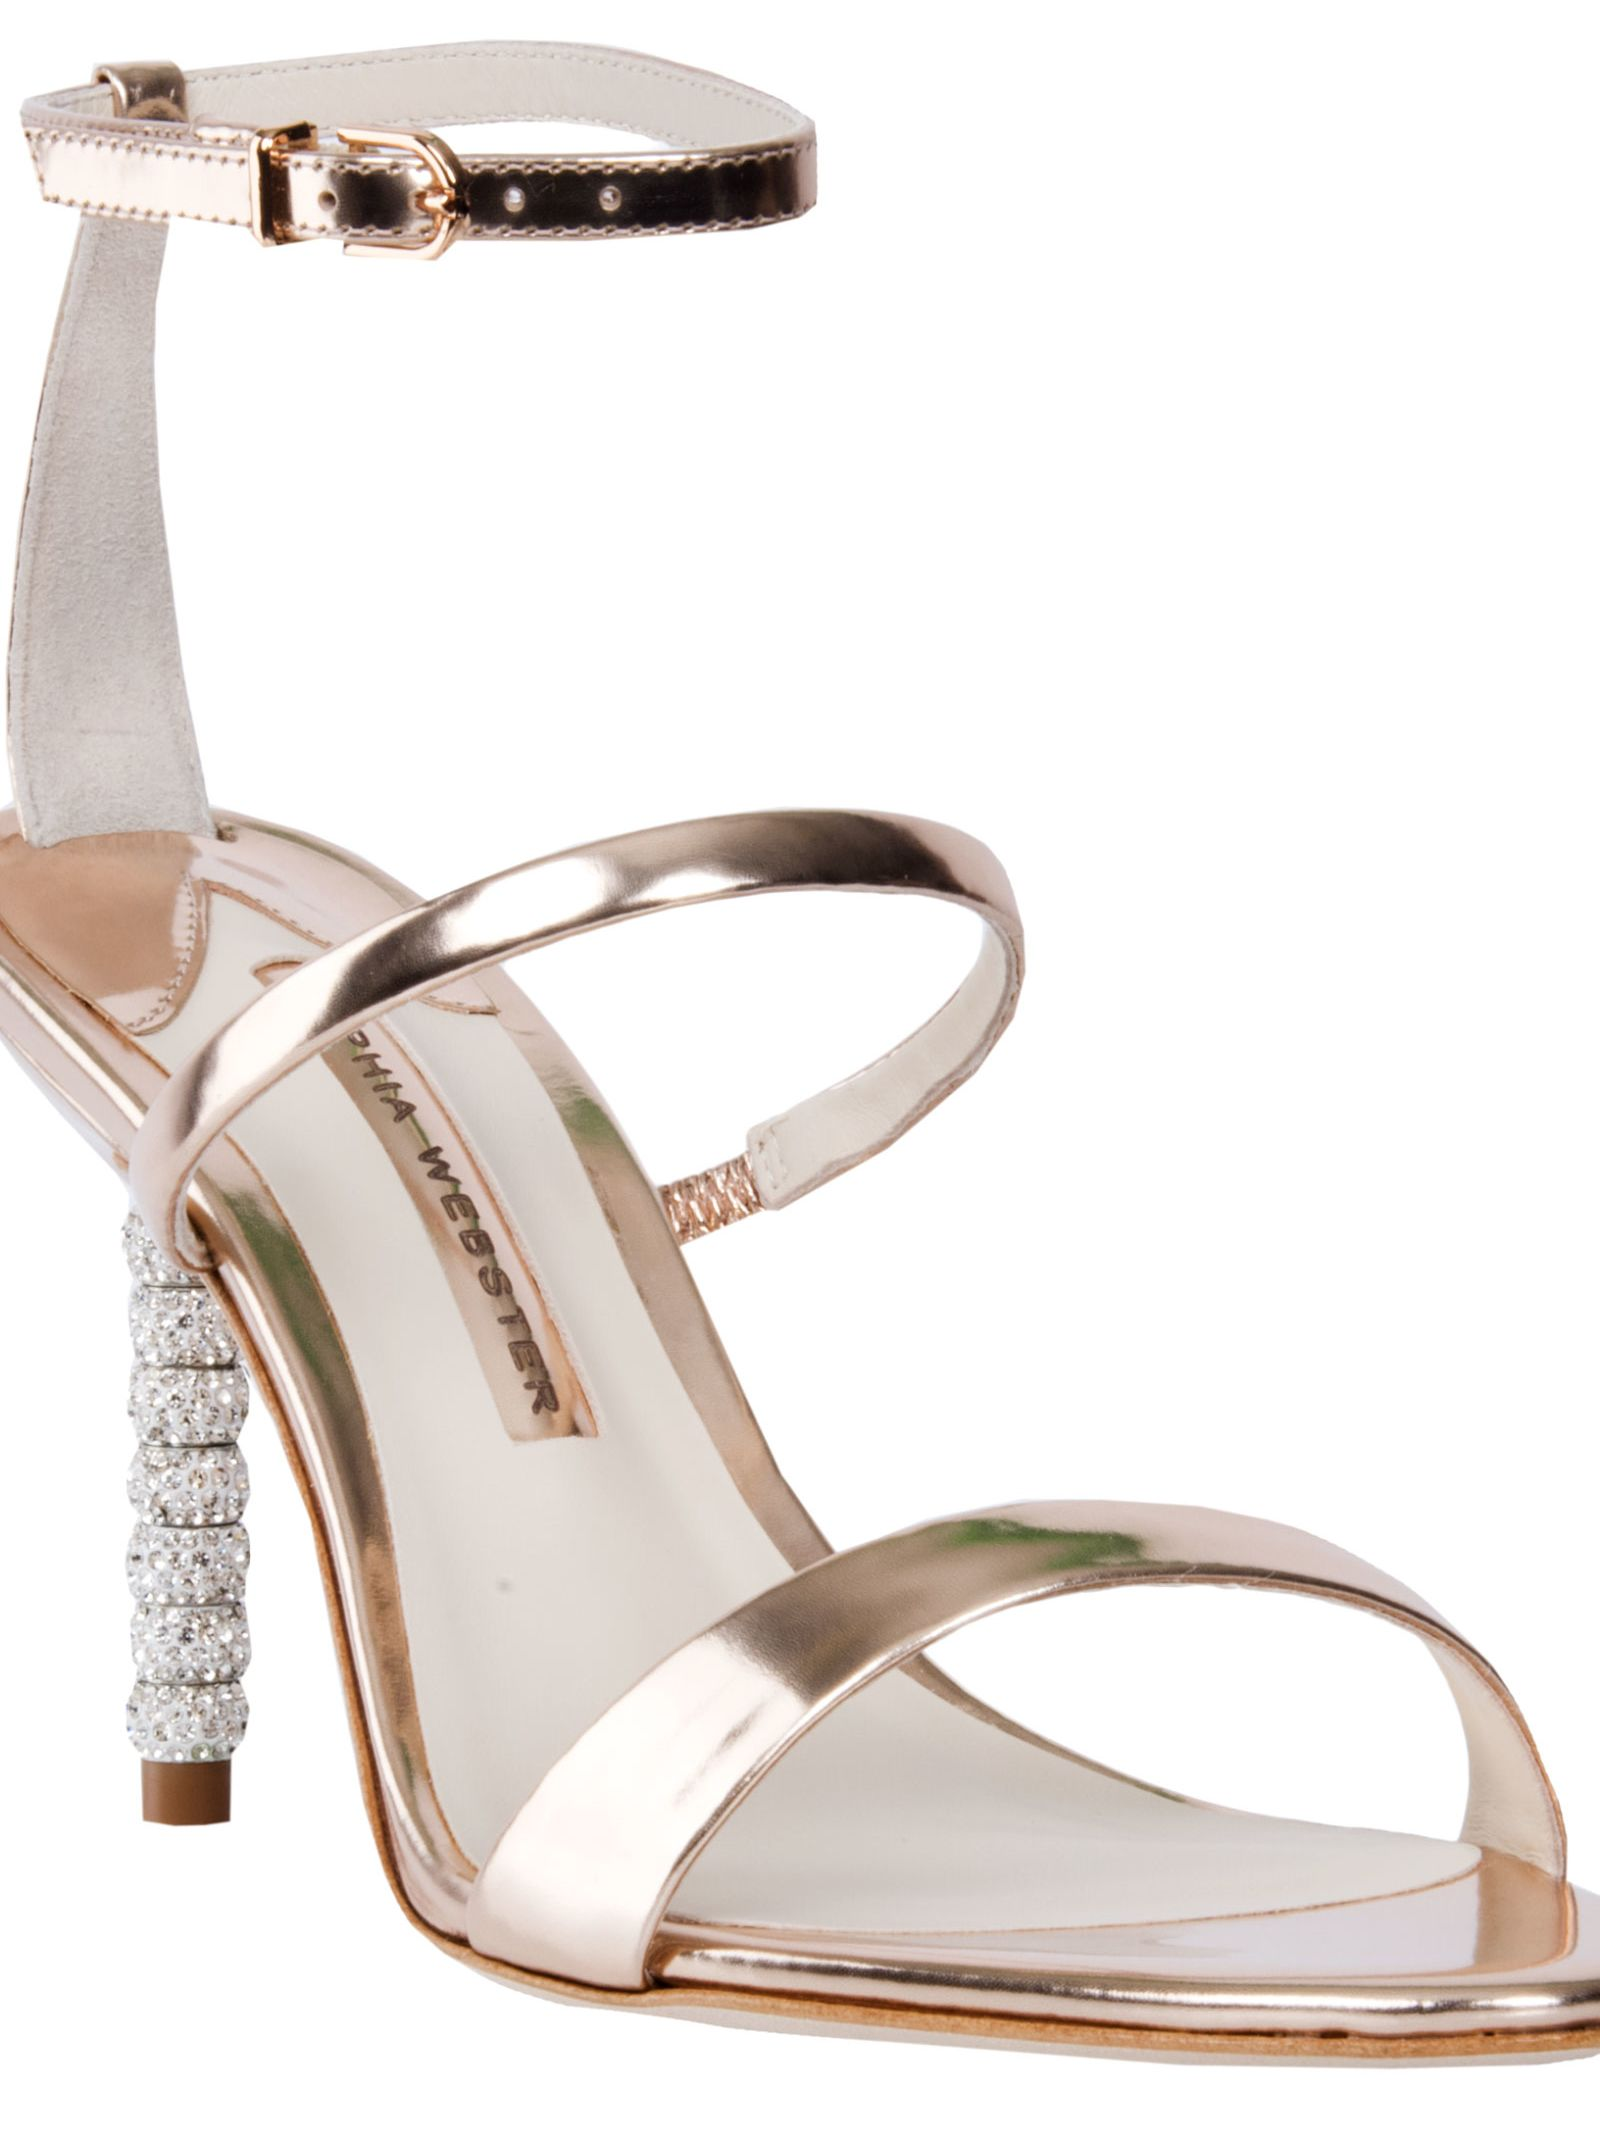 Rosalind Crystal sandals - Nude & Neutrals Sophia Webster DDxbcAvay